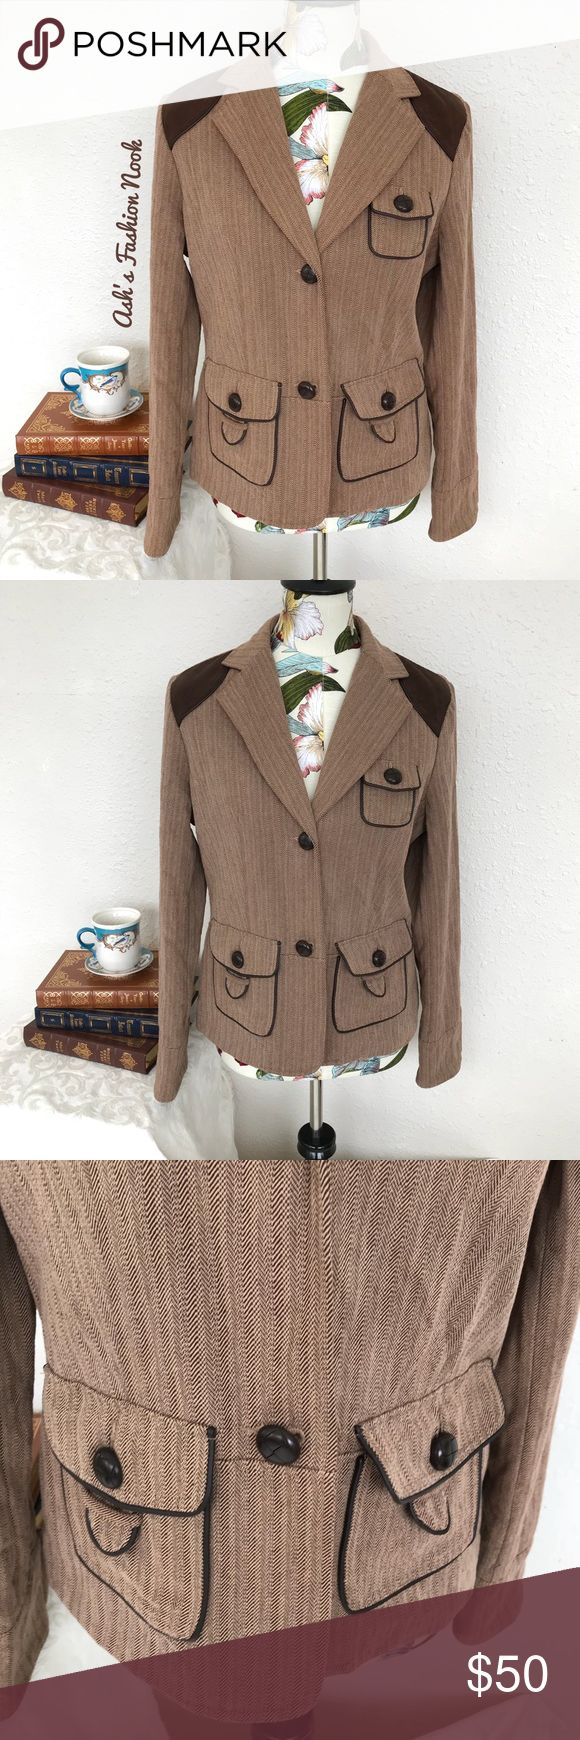 Ruff Hewn-Brown Tweed Jacket 🌸Brand: Ruff Hewn🌸 Color(s): Tan with dark brown accents Size: large Stretch: no Fabric Content: see pic Measurements: see pic Condition: EUC! Note(s): no flaws! Gorgeous jacket! You will look so very Oxford sporting this fabulous jacket. It has reinforced elbows.  📦Bundle your likes, and I will send you a no obligation offer. Or, submit a reasonable offer!📦(G) Ruff Hewn Jackets & Coats Blazers